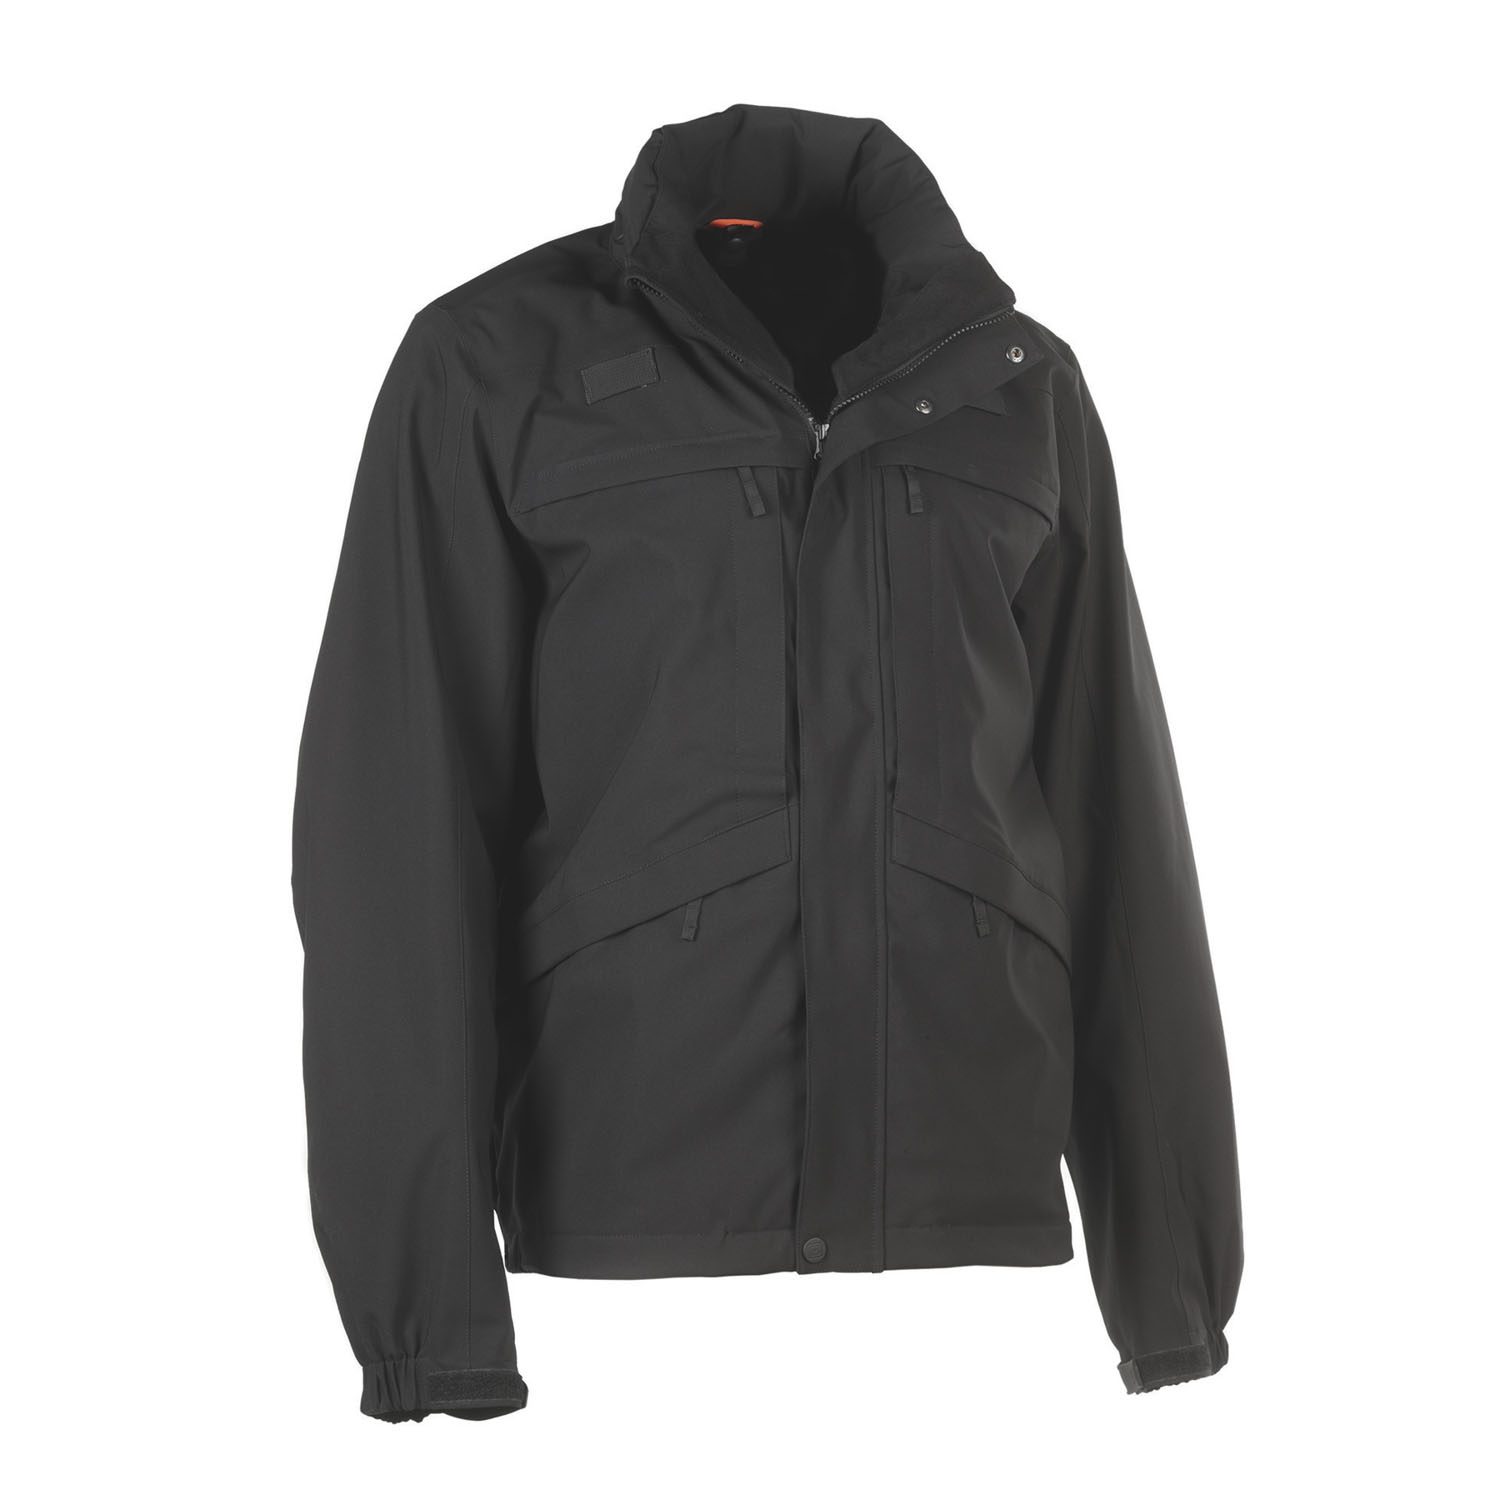 5.11 Tactical 3-in-1 Parka 2.0